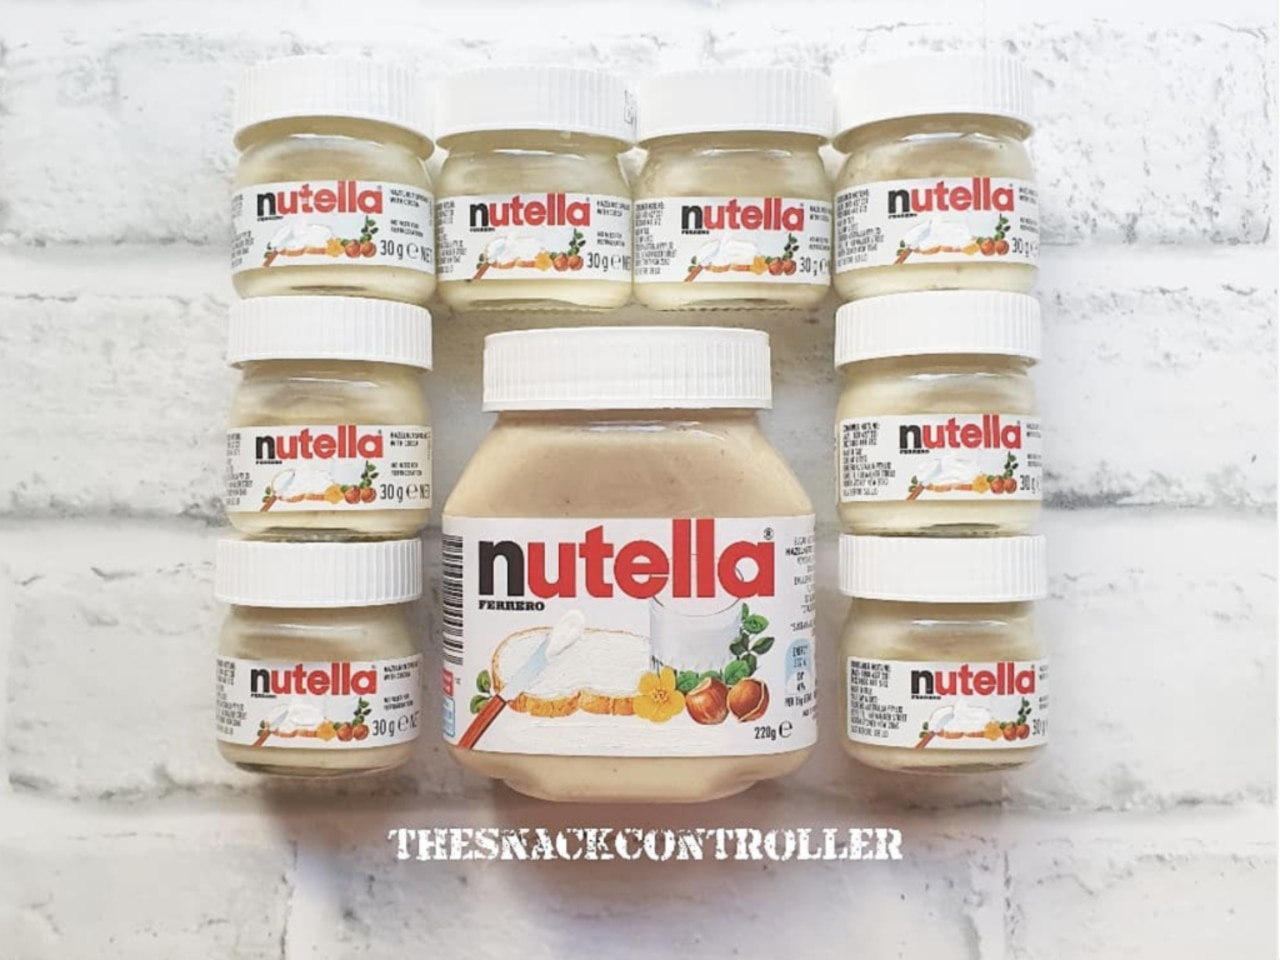 After years of frothing over the traditional chocolatey goodness of Nutella, fans are now going wild on social media for the same sweet treat - with a twist. Picture: TheSnackController/Instagram